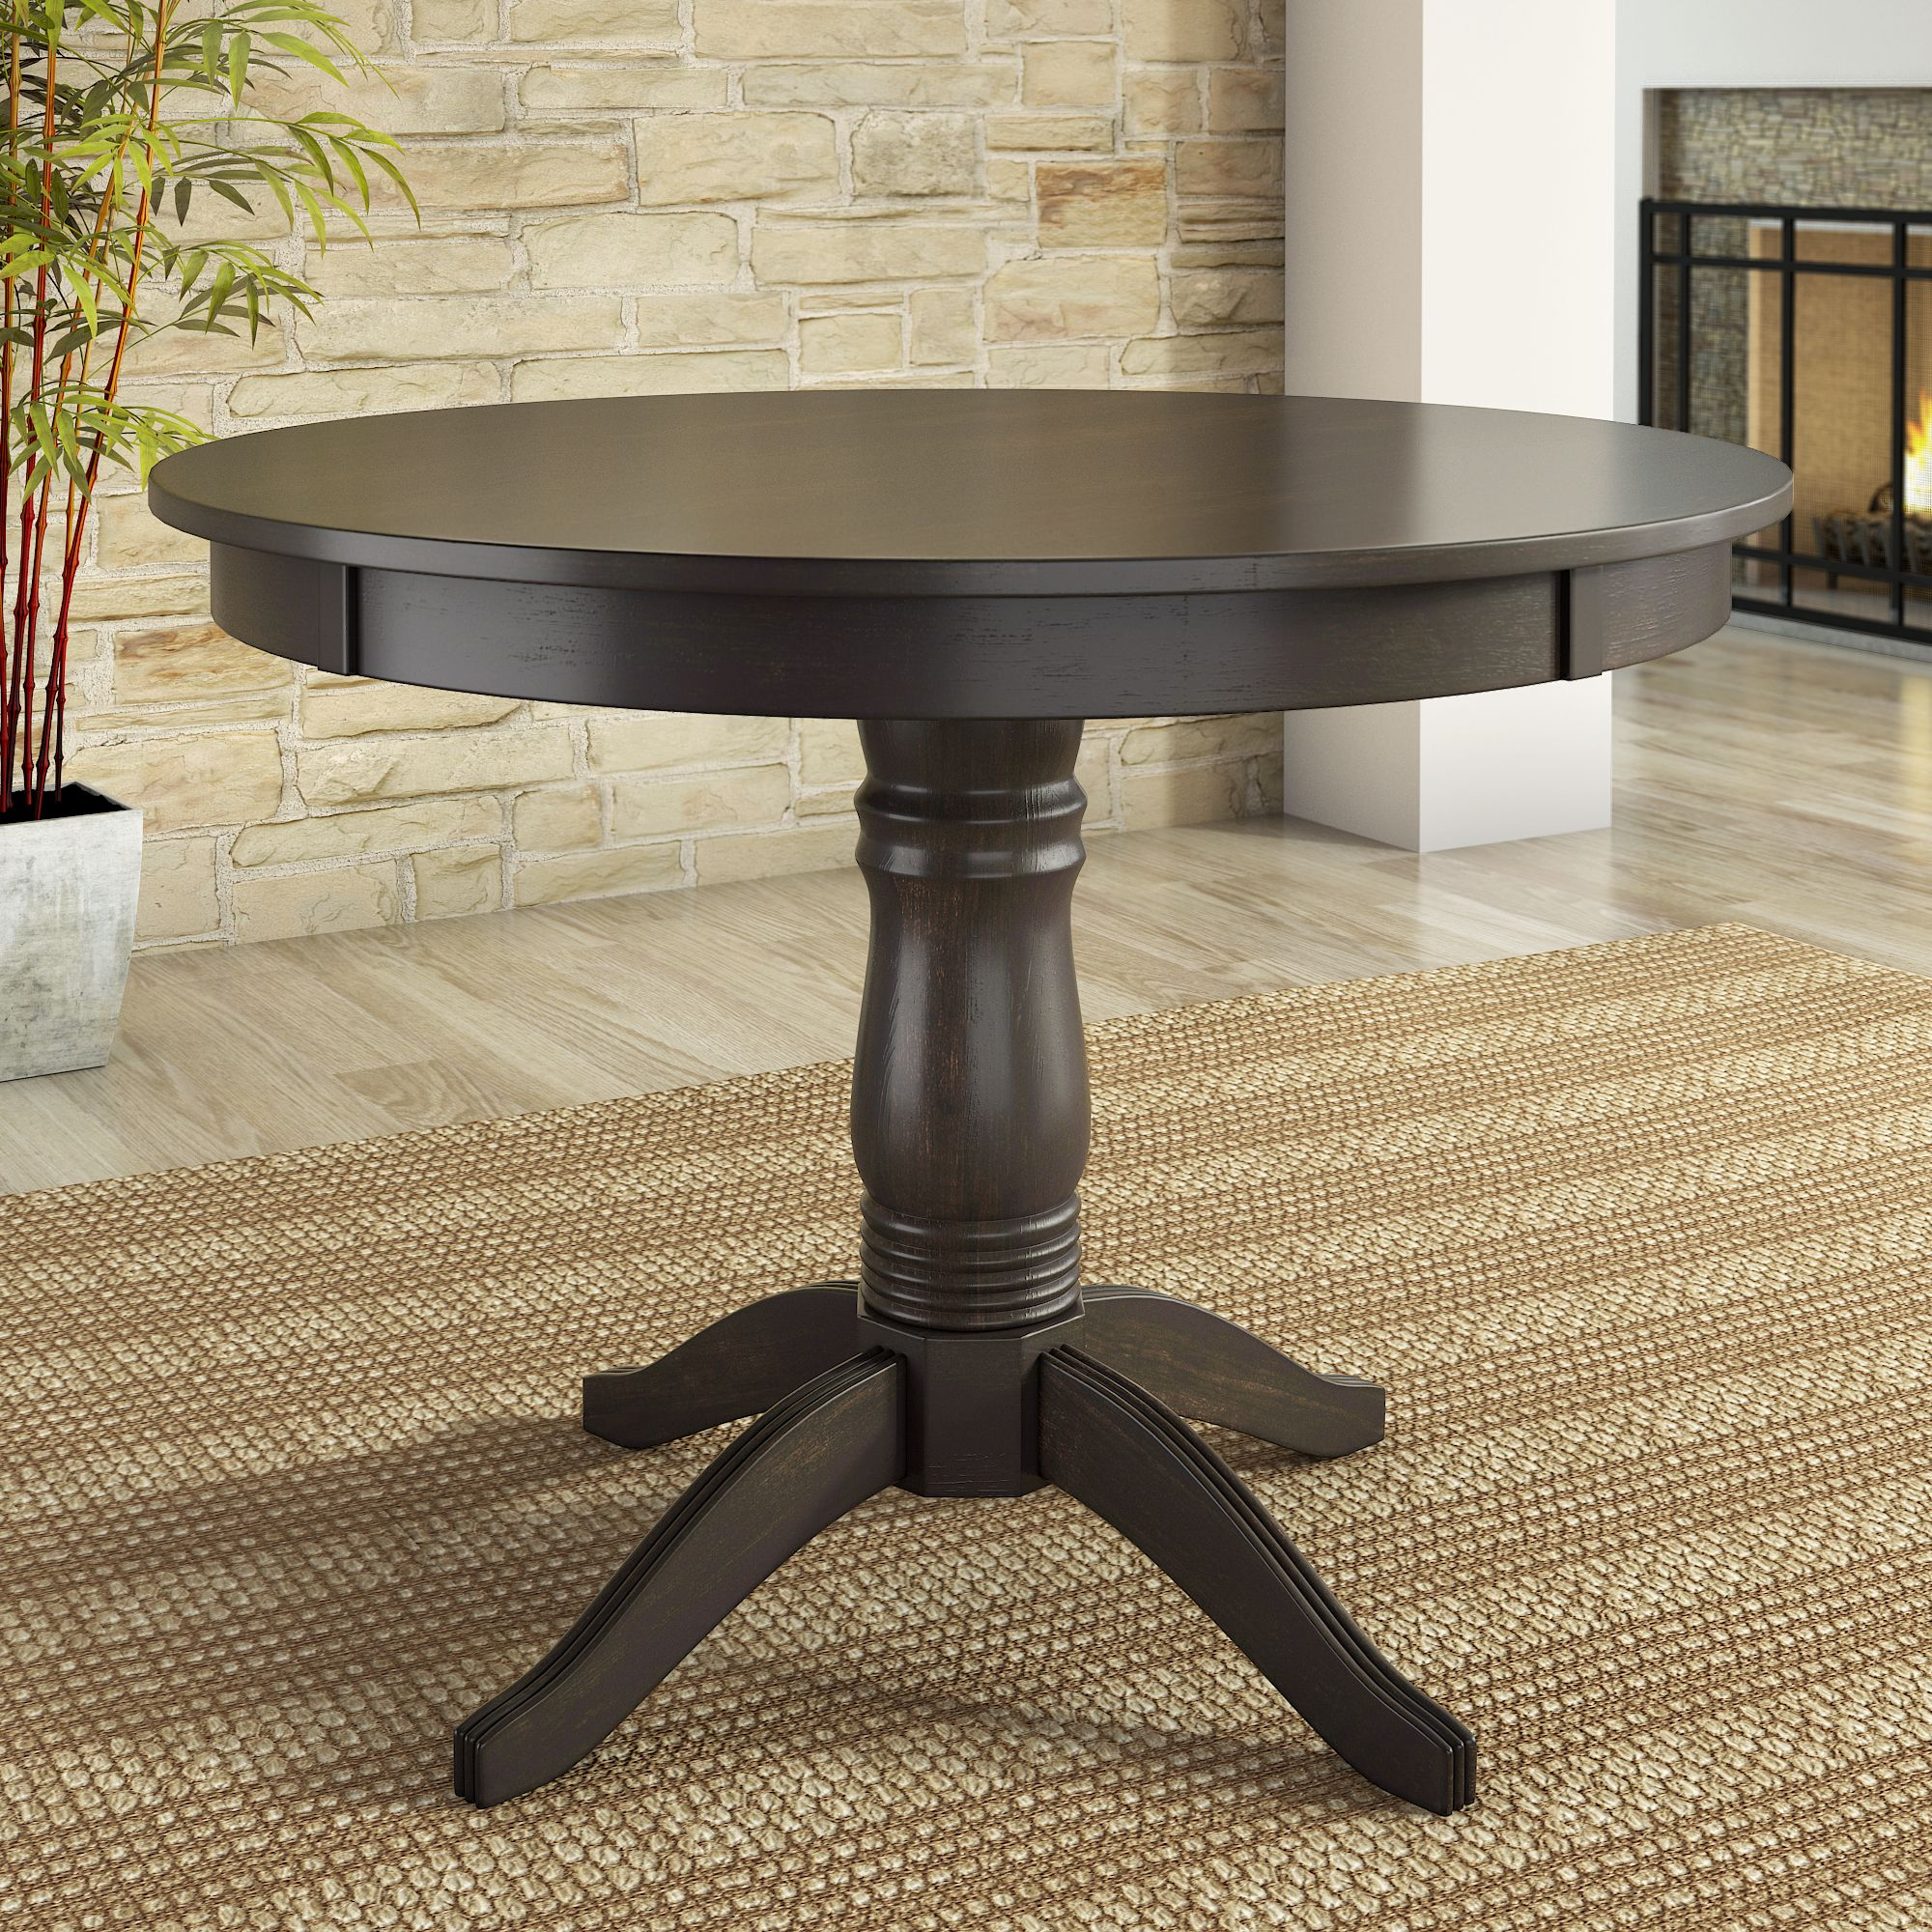 Lexington Round Dining Table, Multiple Colors by Weston Home